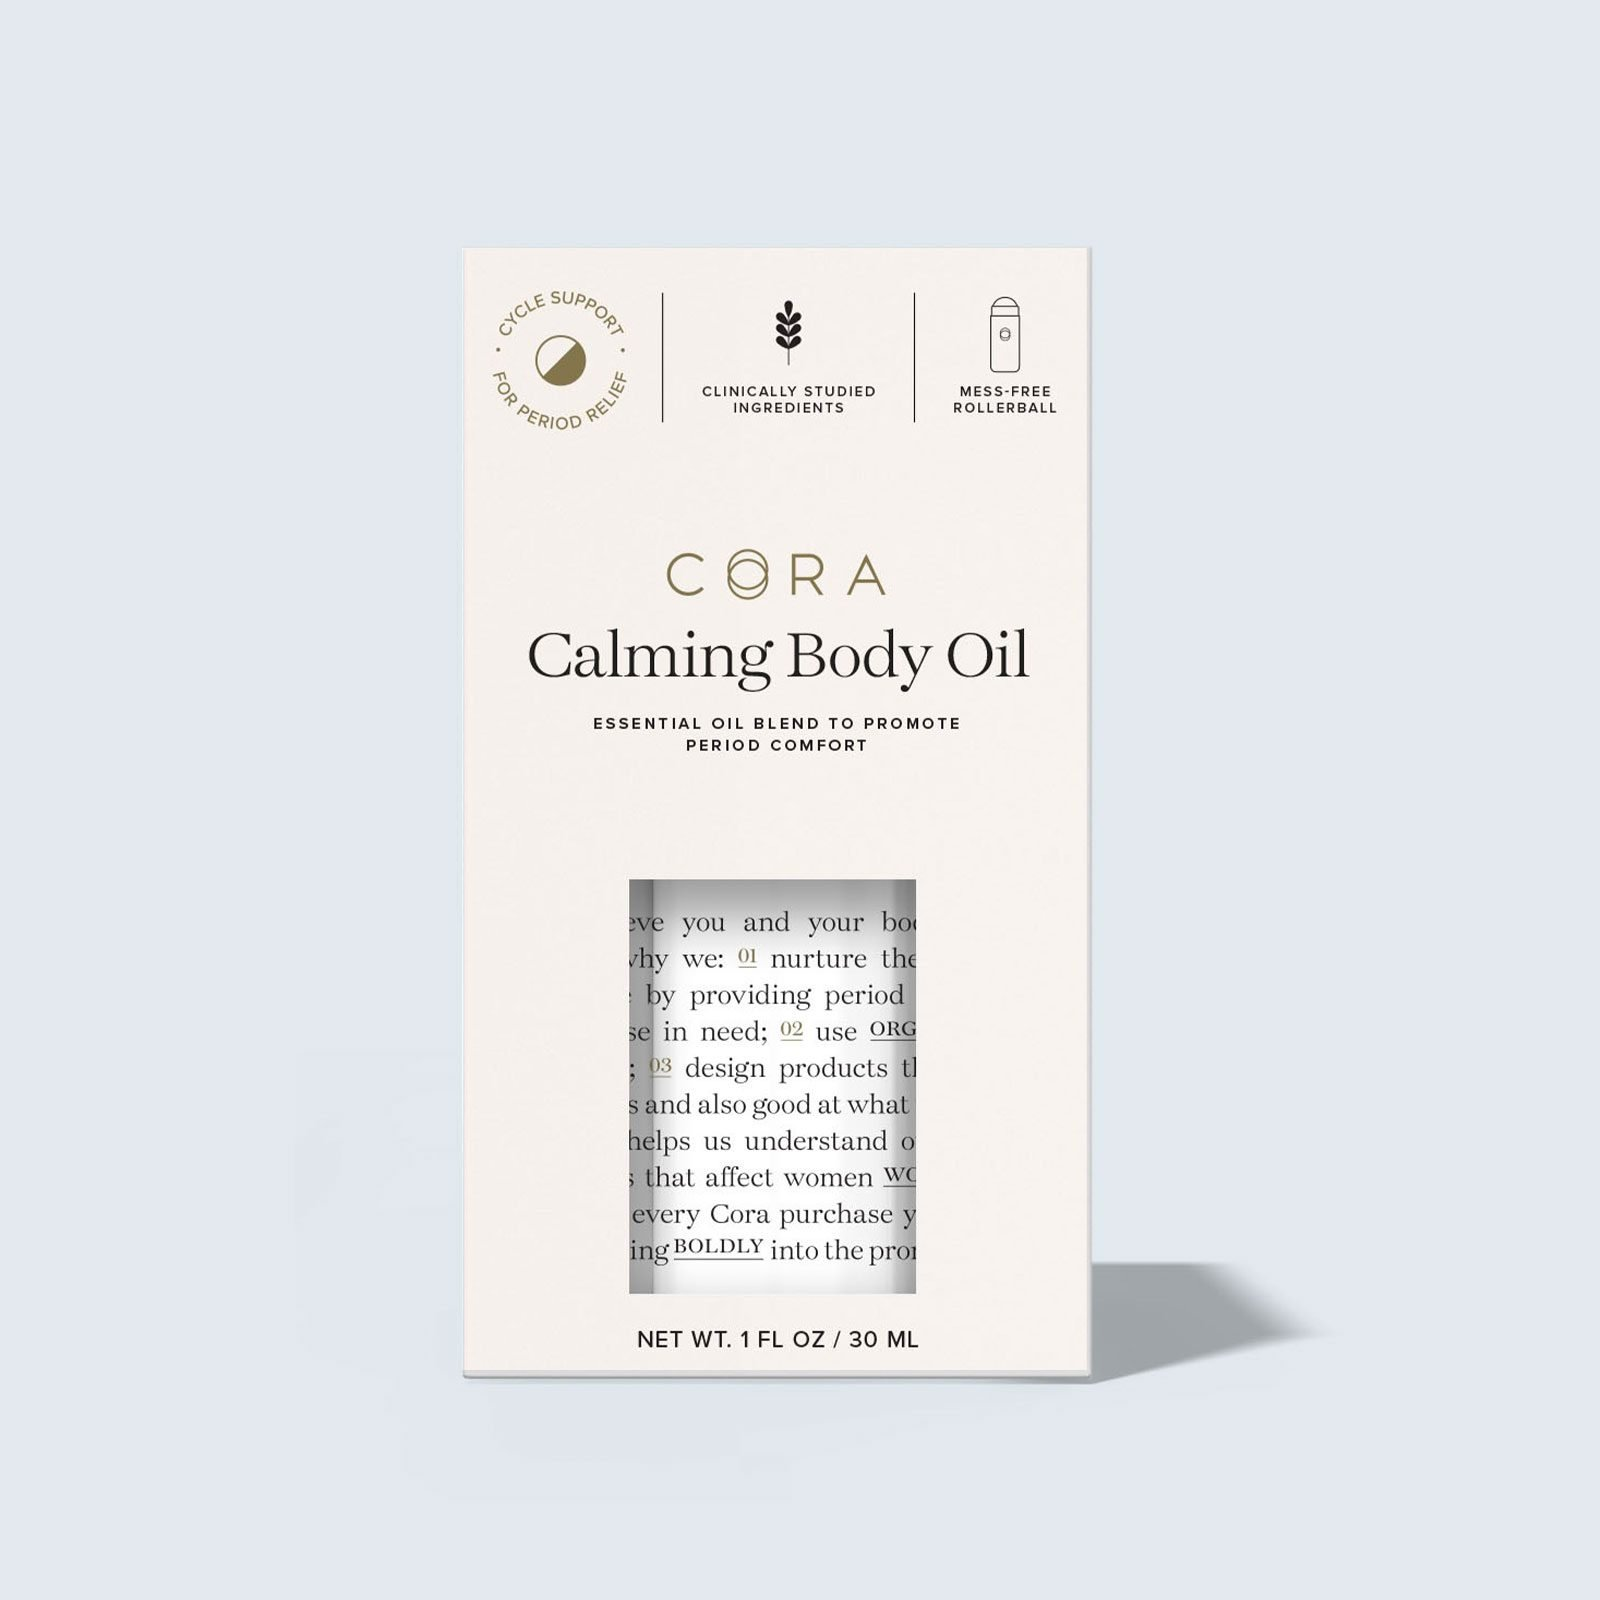 For just about any gal on your list, Cora Calming Body Oil